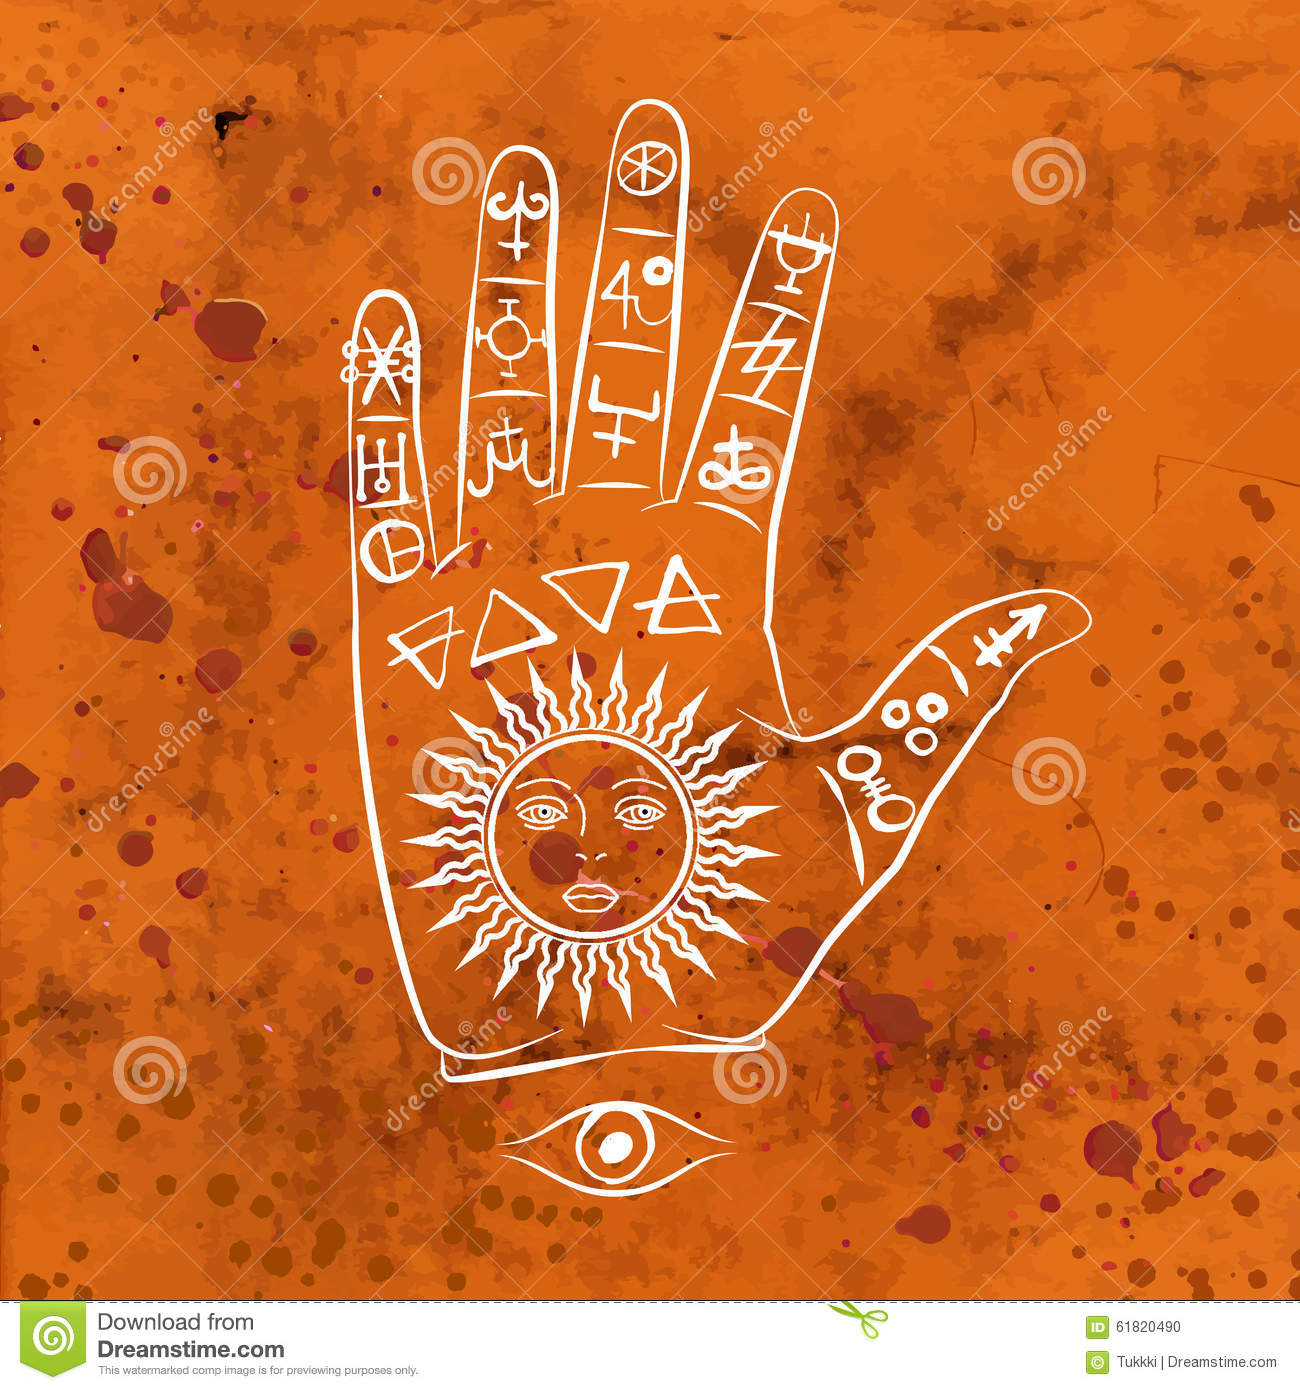 Symbol Sonne Bedeutung Vector Illustration Of Open Hand With Sun Tattoo Stock